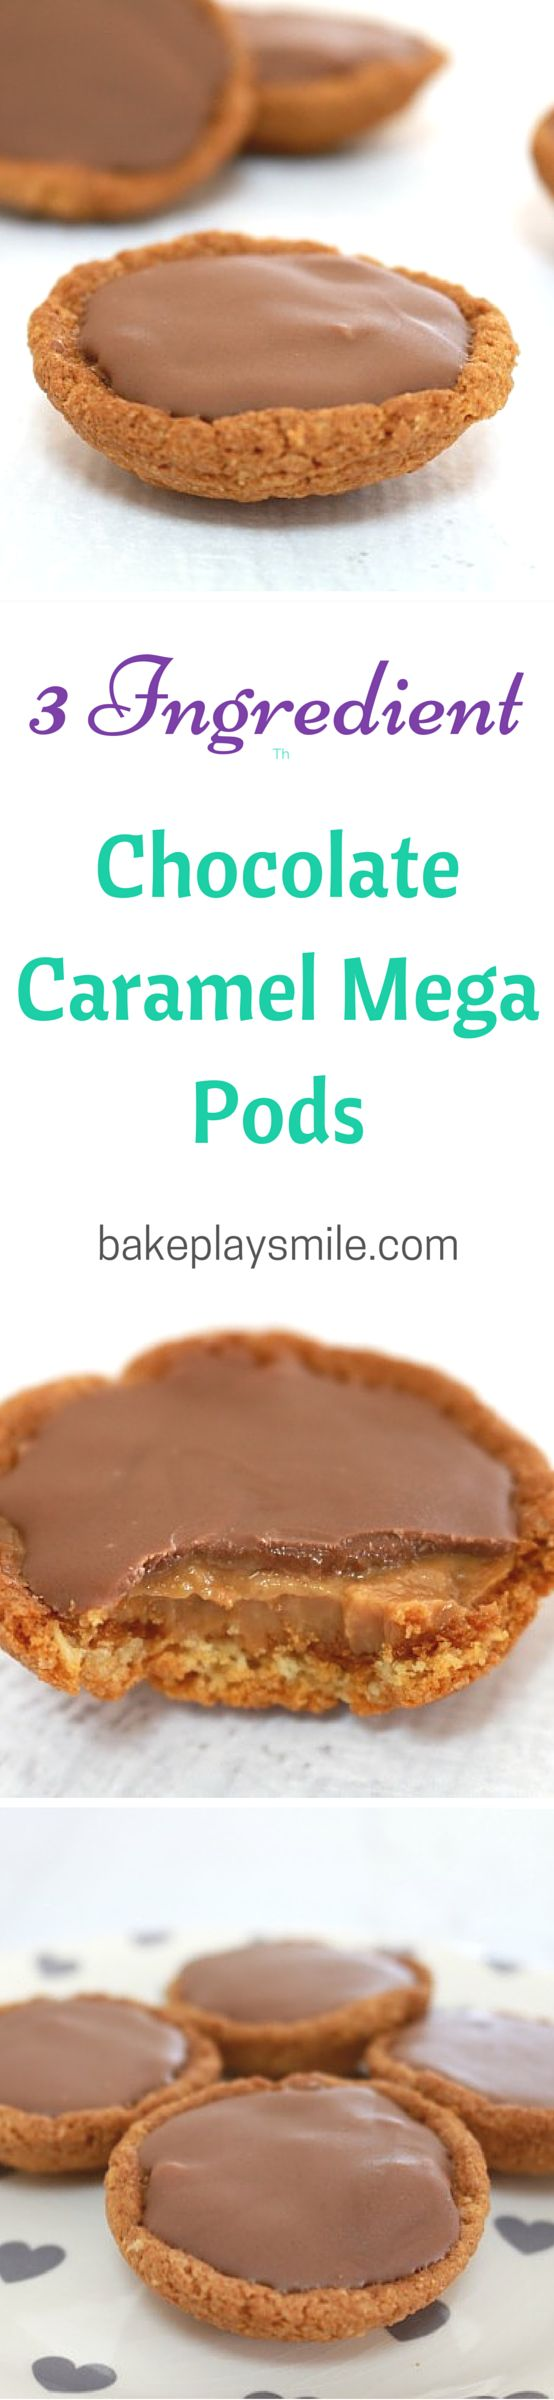 These are the best little treats ever! Use store-bought caramel for a quick and easy dessert.